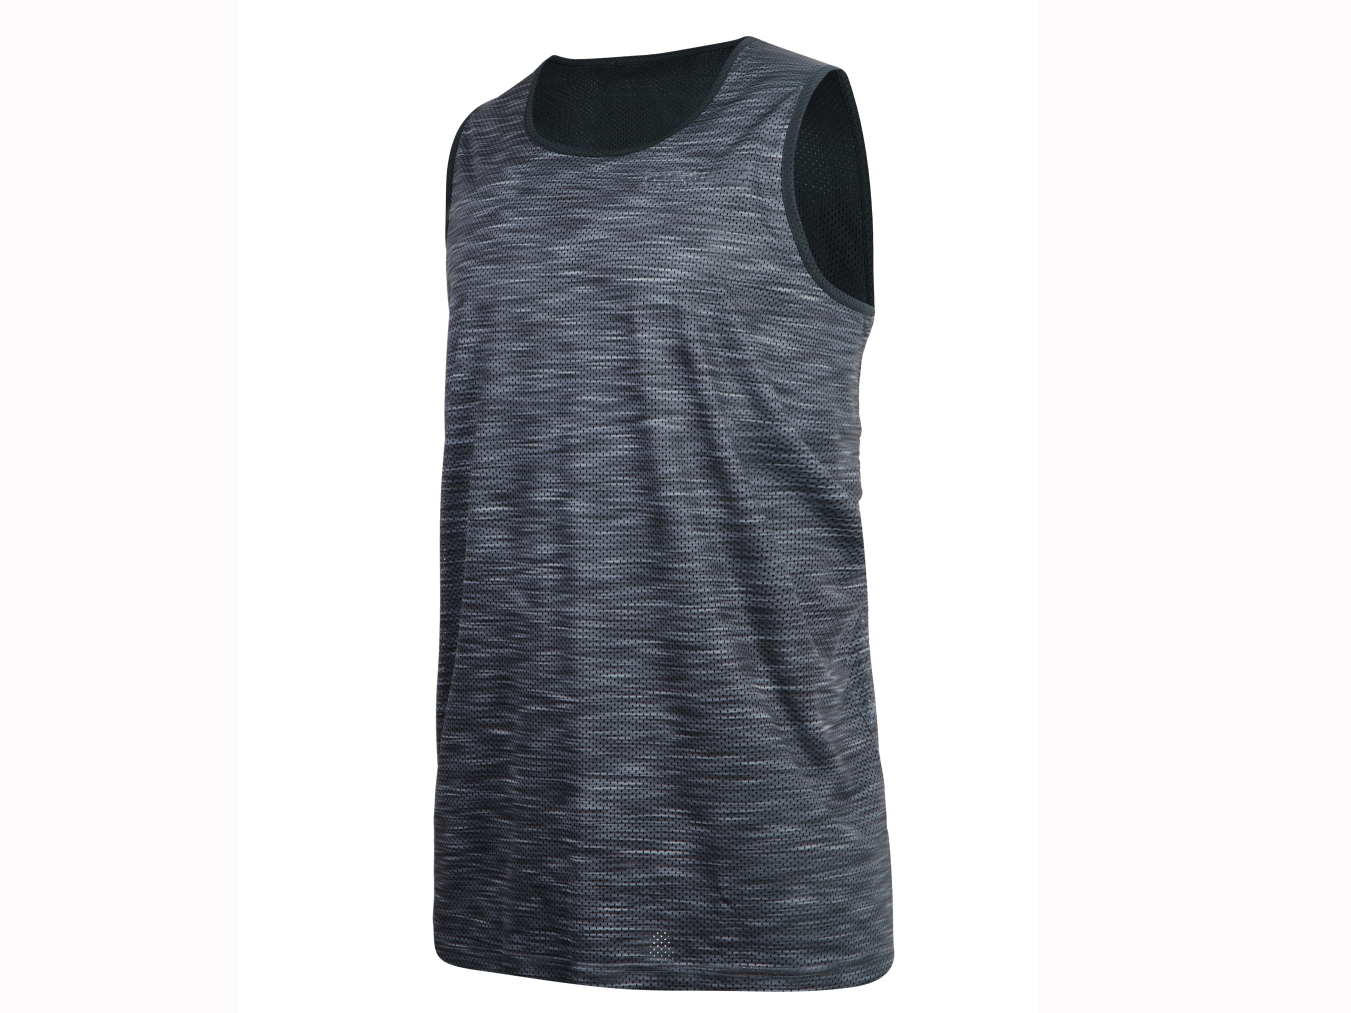 Men's Reversible basketball Tank Top